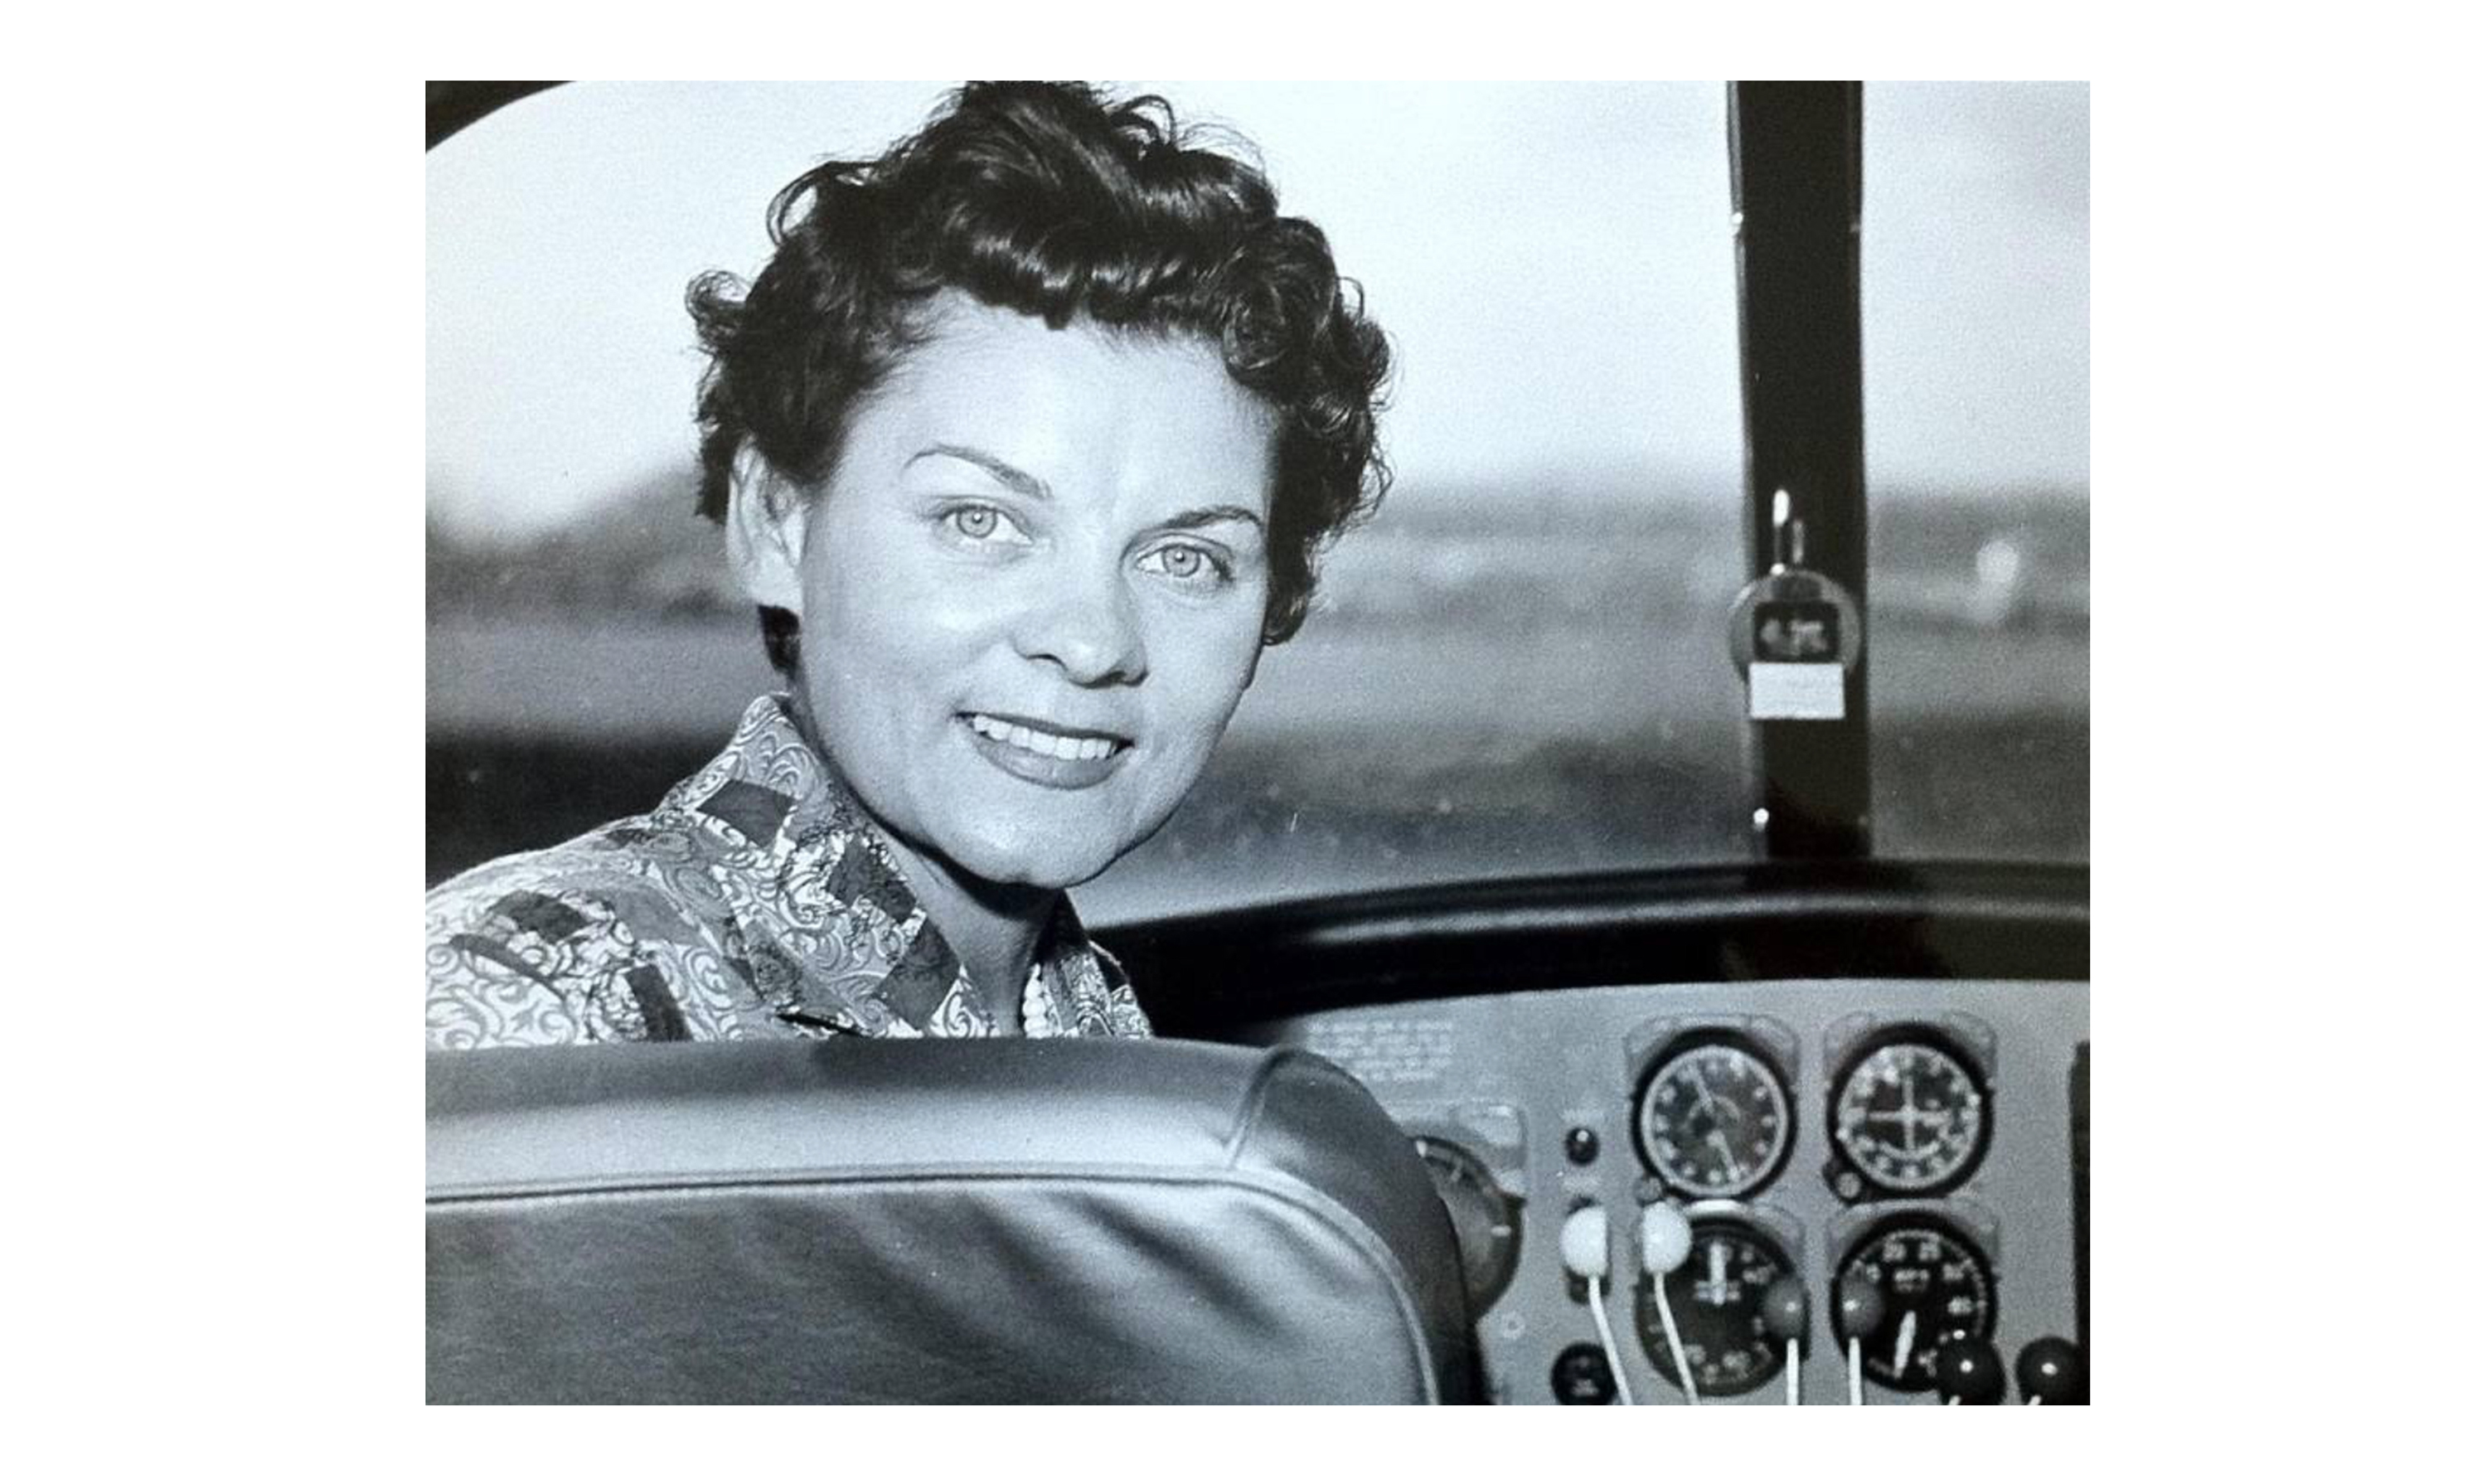 Groundbreaking female pilot Frances 'Fran' Bera, who set a world altitude record and taught and examined pilots for more than seven decades, died Feb. 10 in San Diego, California, at age 94. Photo courtesy of Leslie Day.